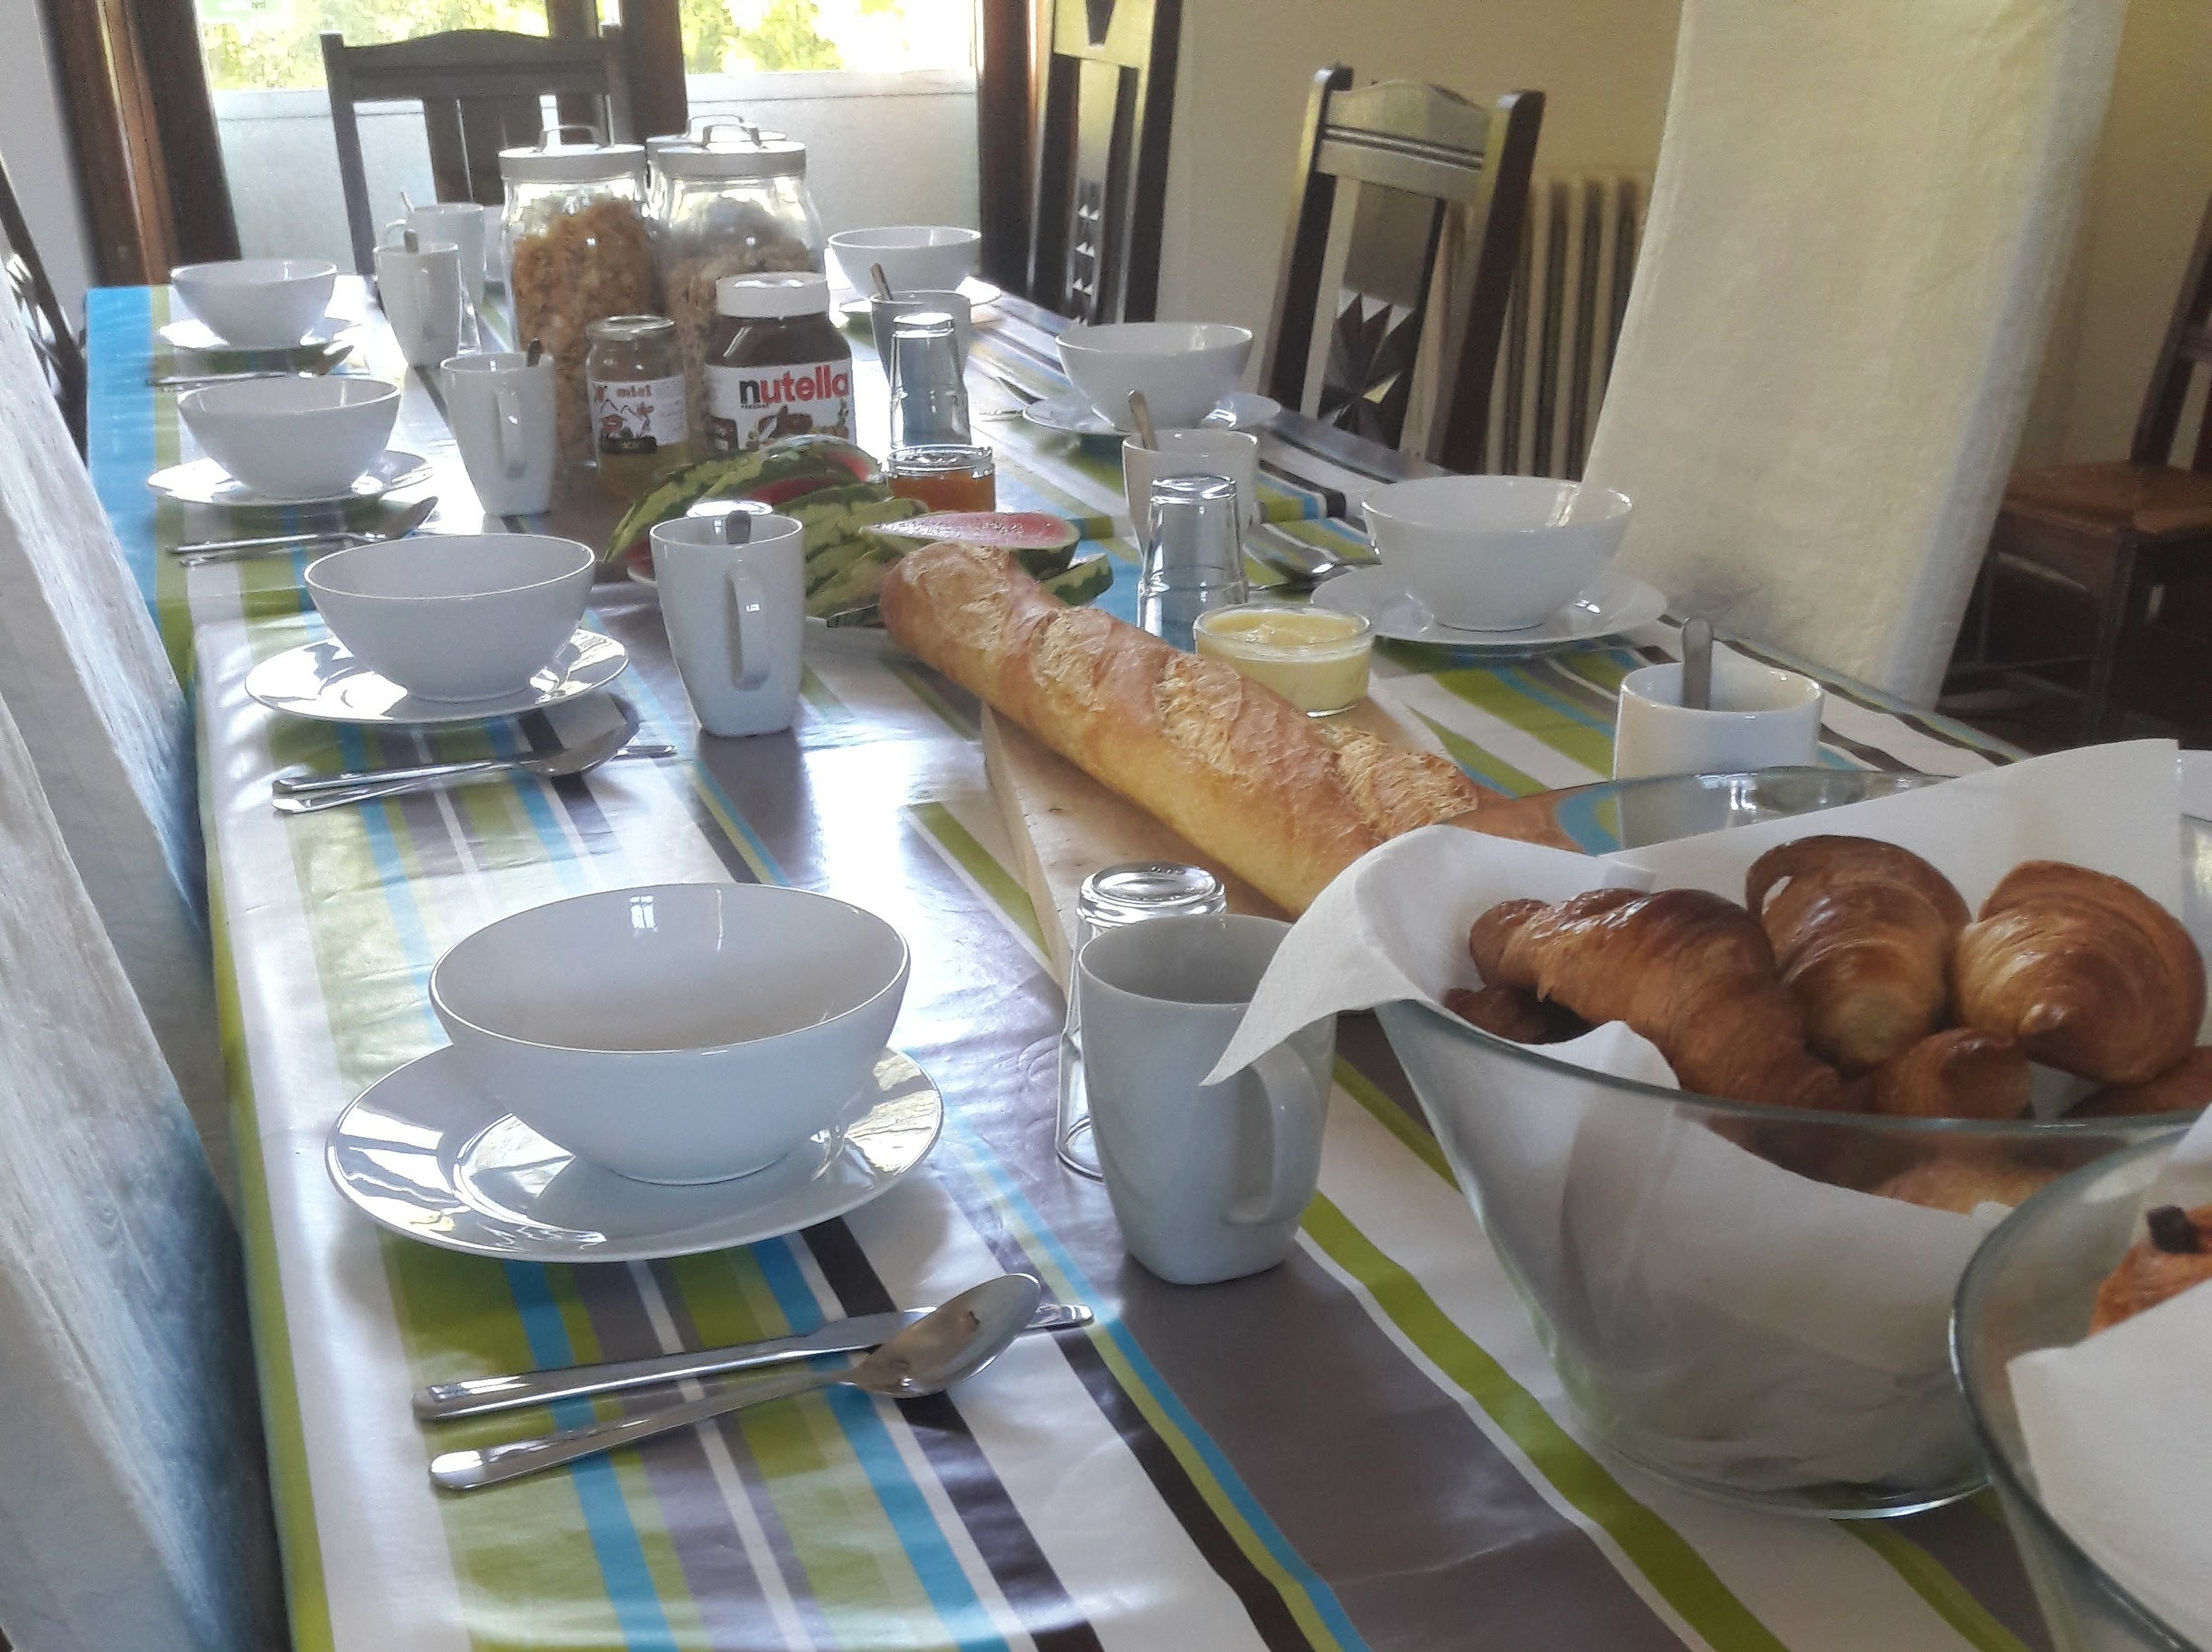 The heart of the home - Our dining table packed with breakfast goodies